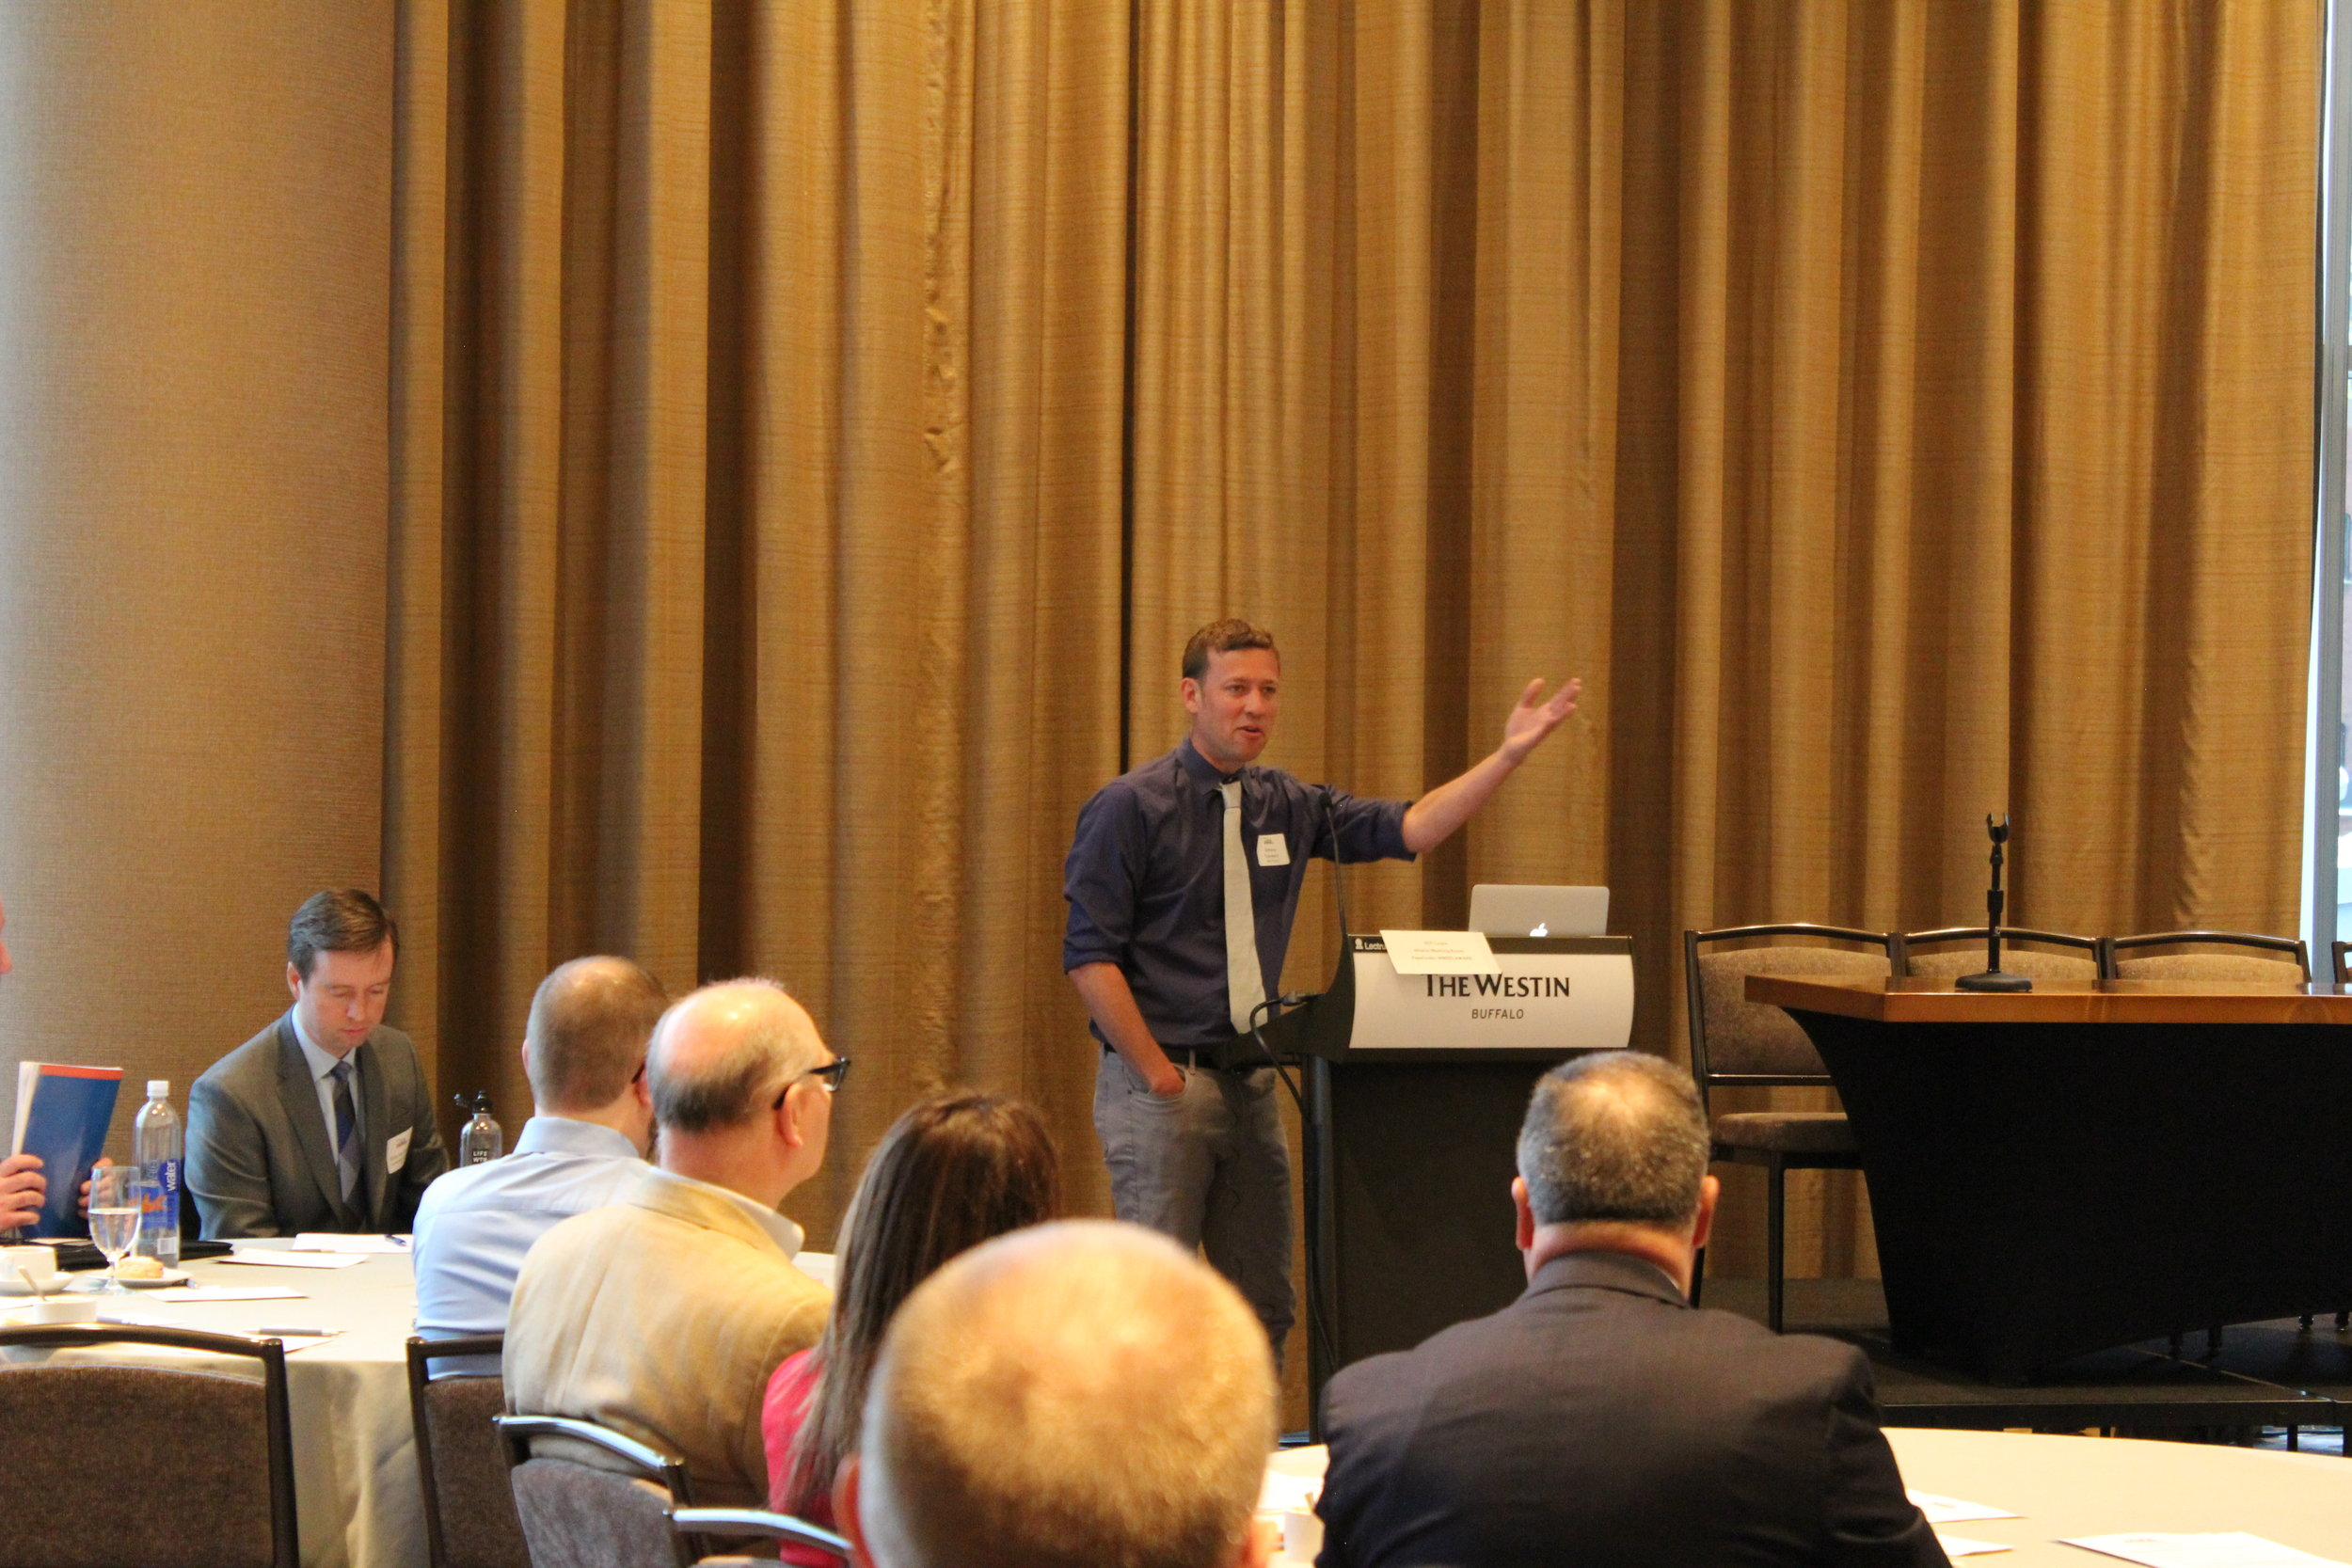 Ketynote Speaker Anthony M. Townsend, Senior Research Scientist at NYU's Rudin Center for Transportation and fellow at the Data & Society Research Institute